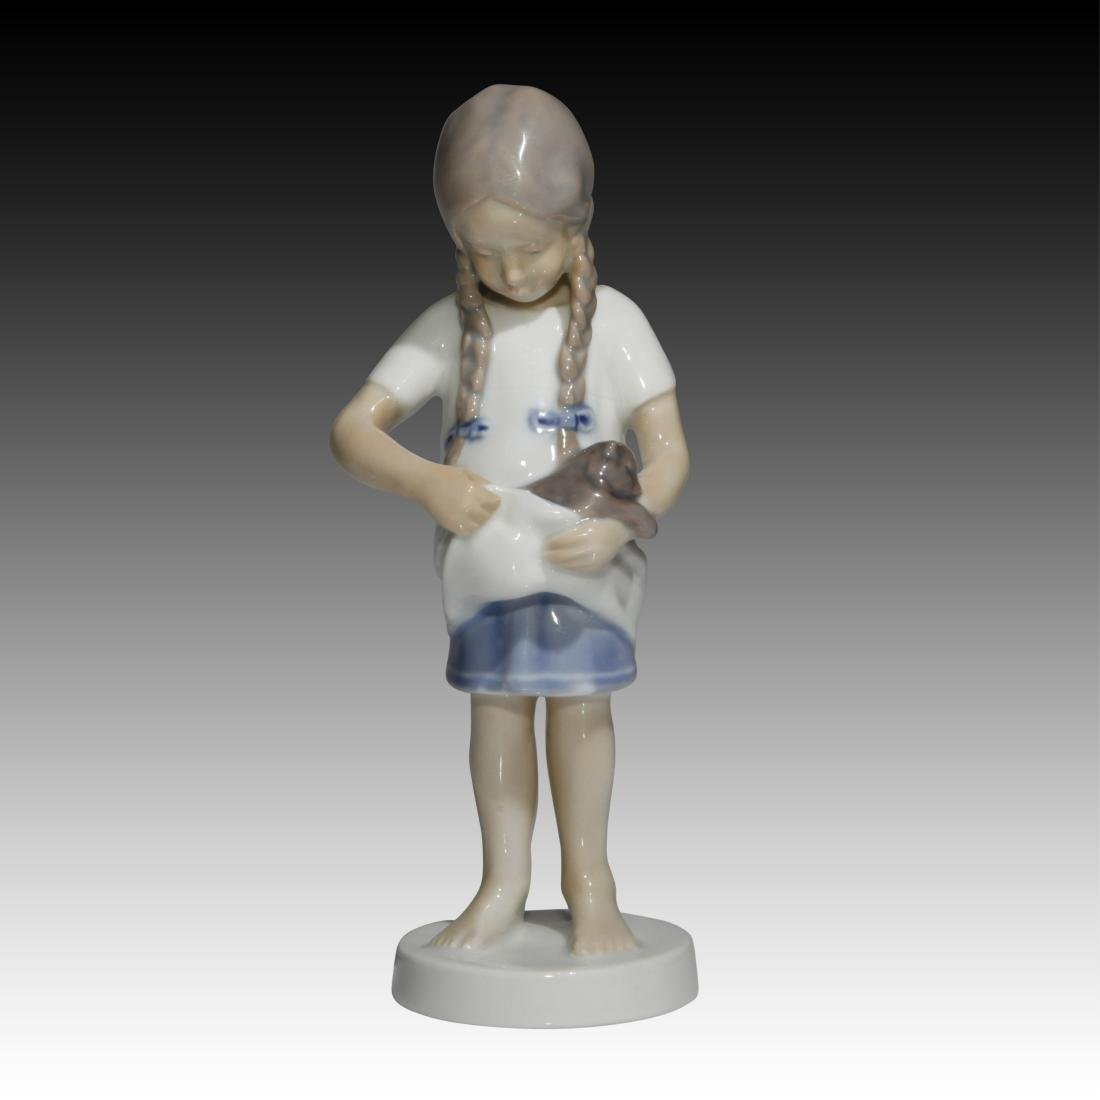 Bing & Grondahl Young Girl with Kitten Figurine